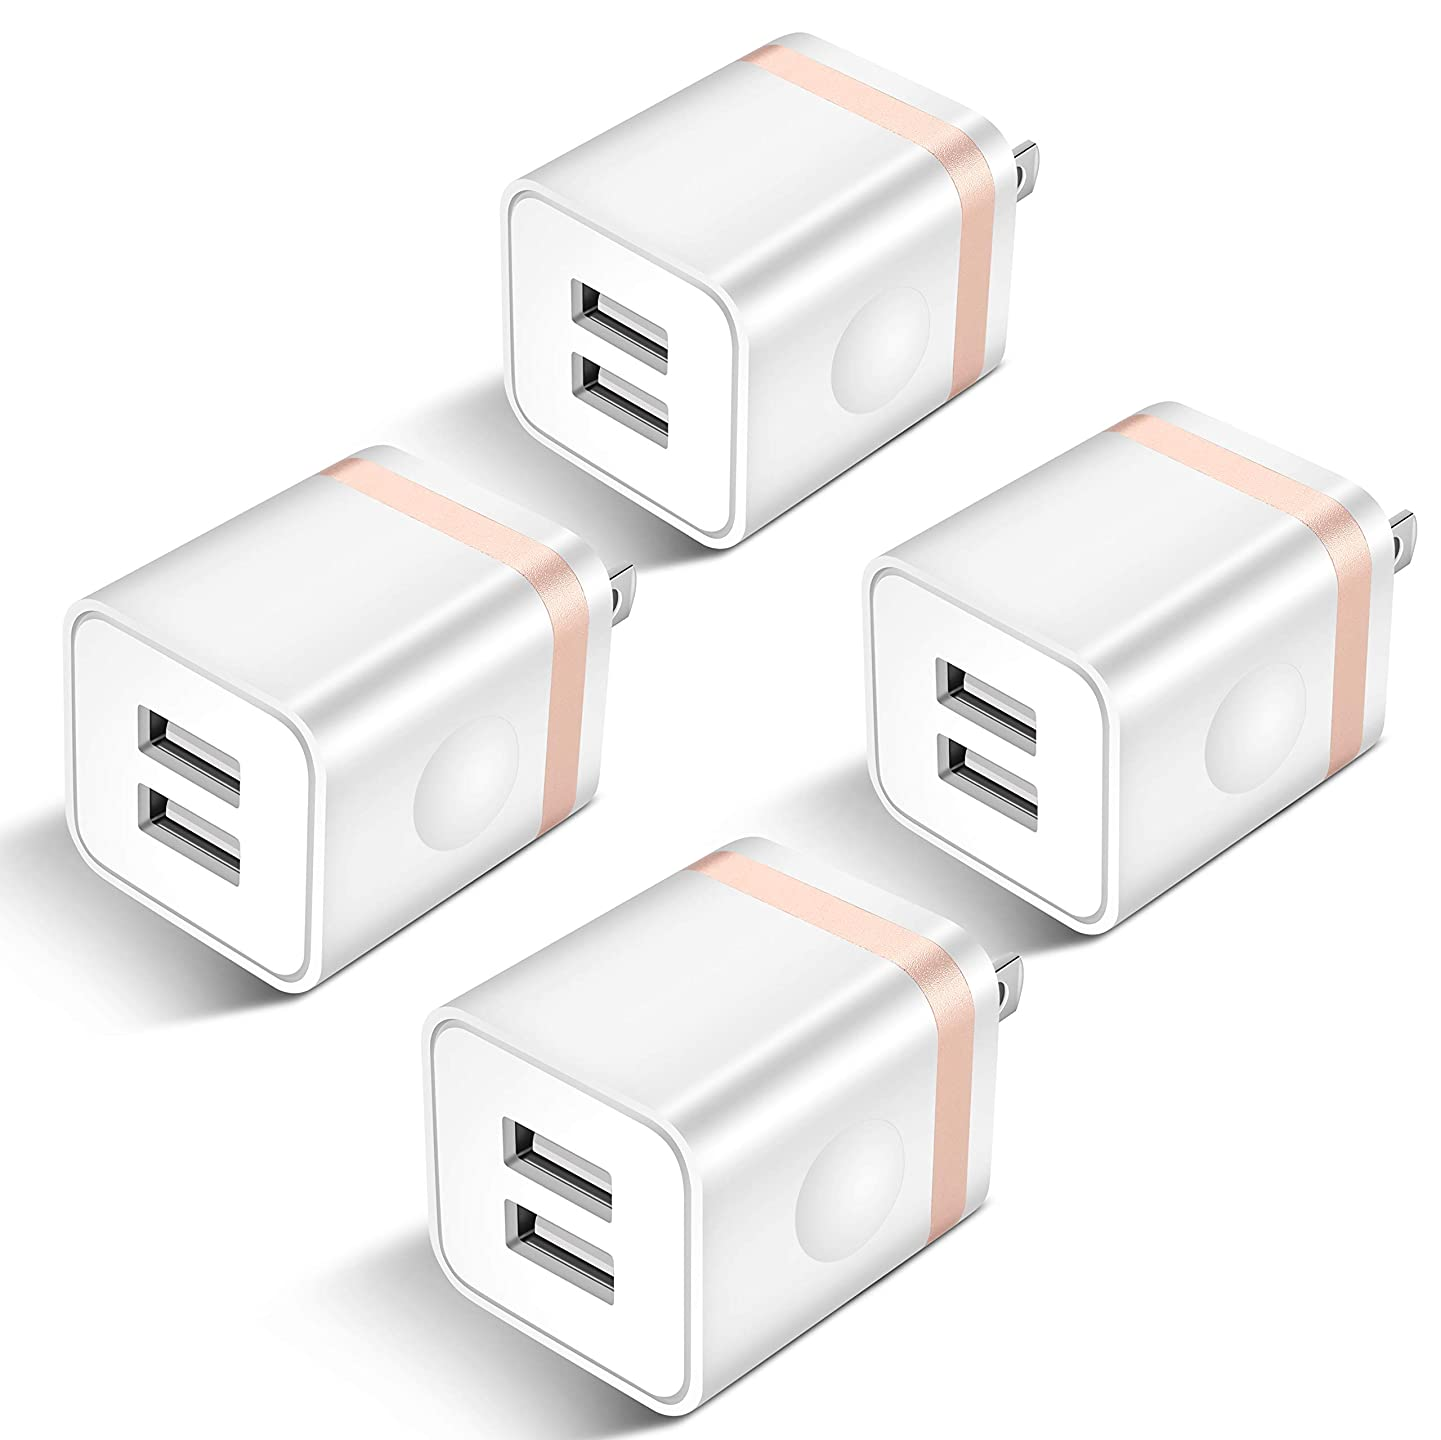 USB Wall Charger, STELECH 4-Pack 2.1Amp 2-Port USB Plug Cube Power Adapter Charger Block Compatible with Phone Xs Max/Xs/XR/X/8/7/6 Plus/5S, Samsung, LG, Moto, Nokia, Kindle, Android Phone -Upgraded